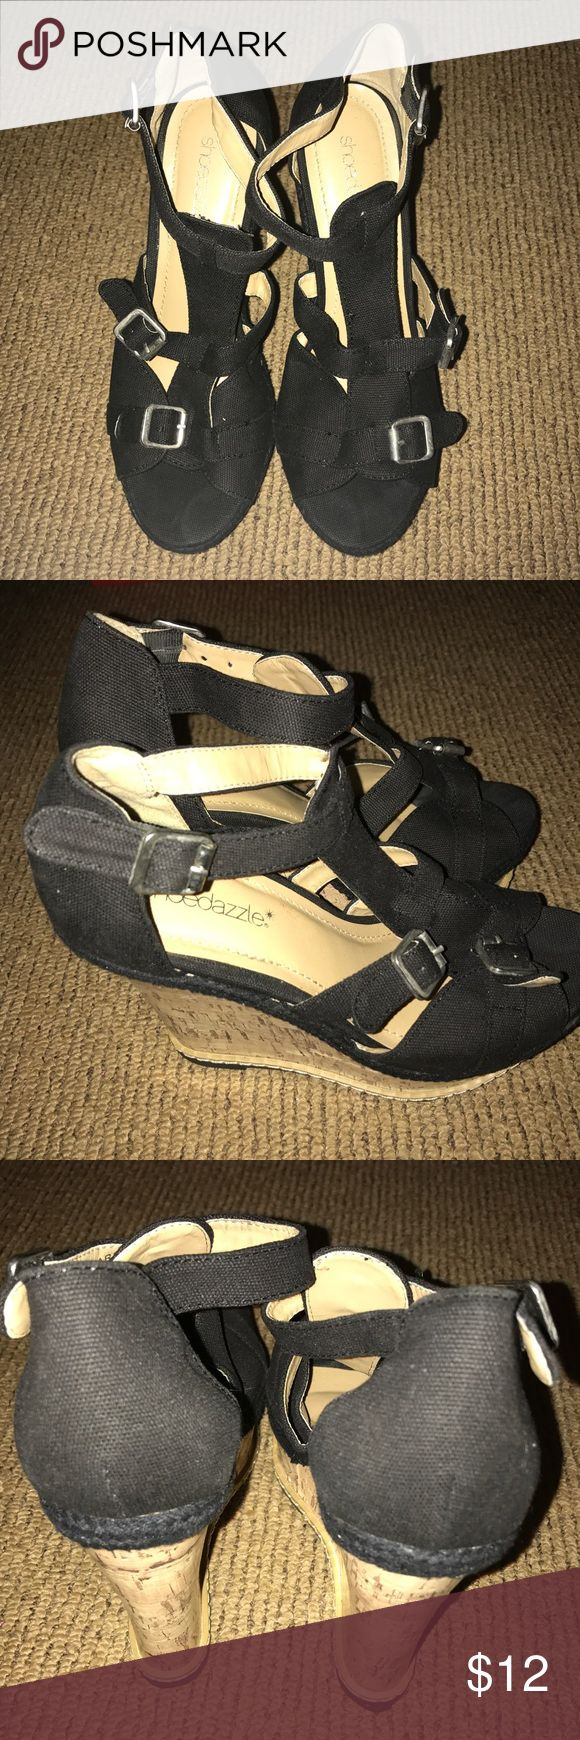 Shoe Dazzle Black Platform Sandal These sandals were worn once inside, so they are practically new. They do not come with a box or tag, but do come with the pink shoe dazzle duster bag. Shoe Dazzle Shoes Sandals